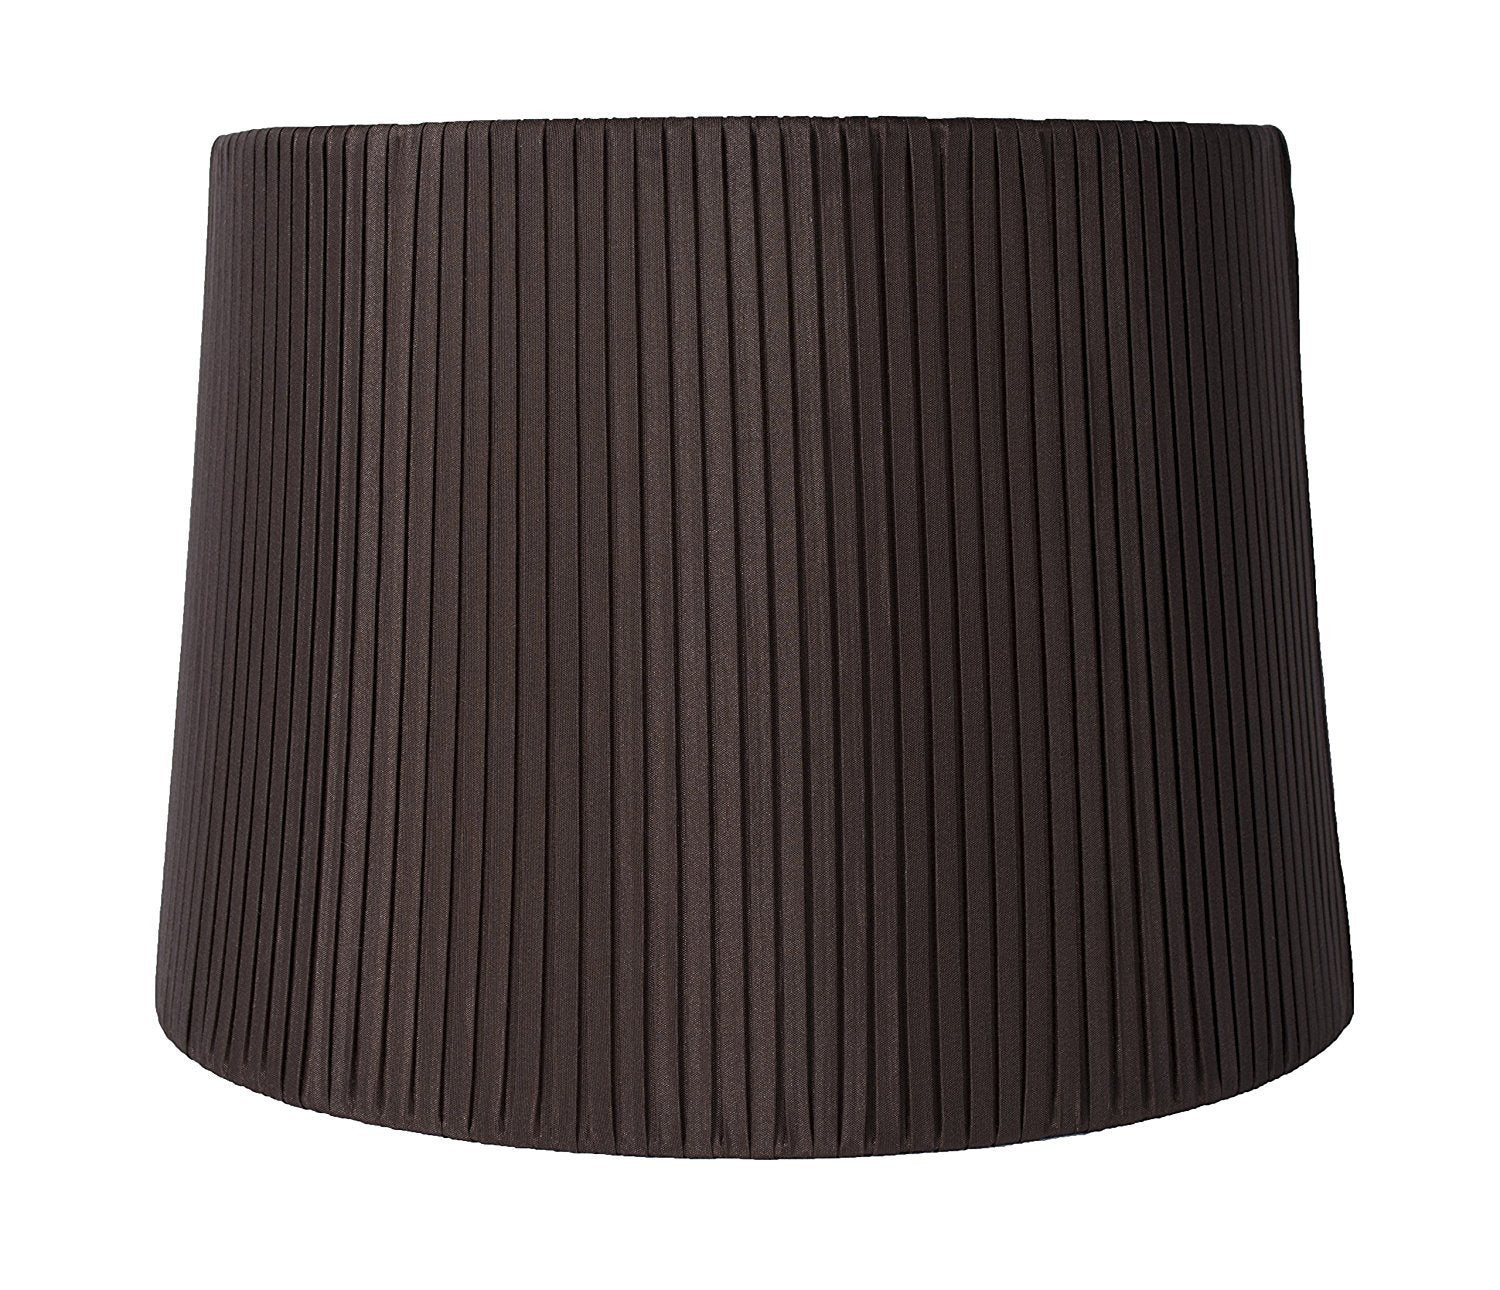 "Faux Silk Box Pleated Drum Lampshade, 12x14x10"", Chocolate, Spider Fitter"